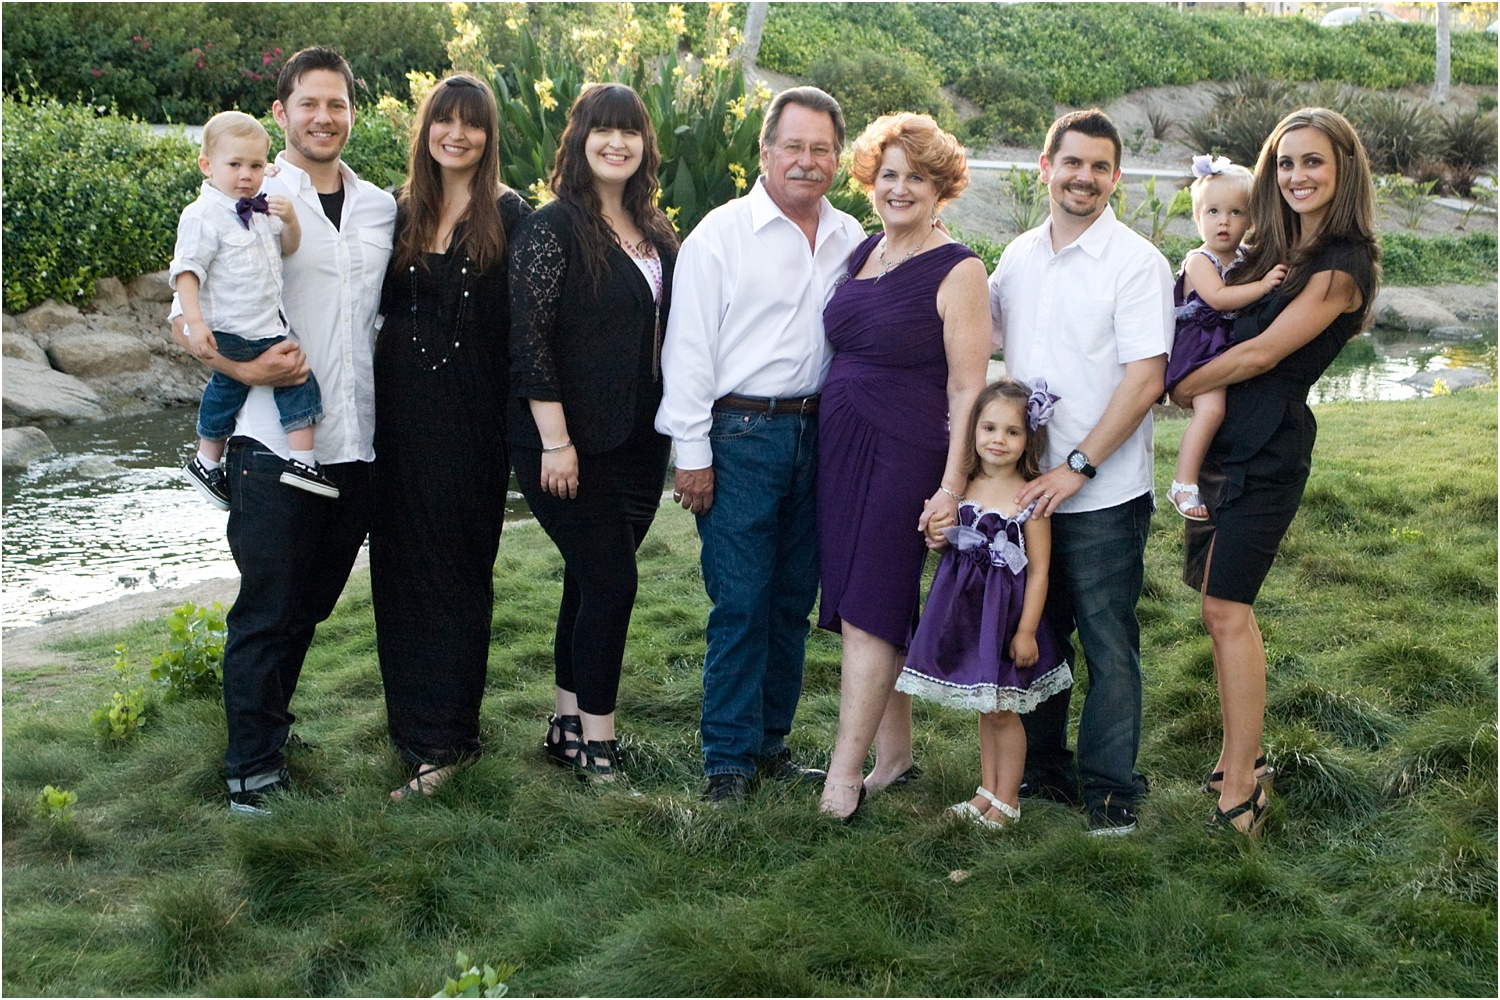 Tips for Posing Large Families and Groups - family posed on the grass